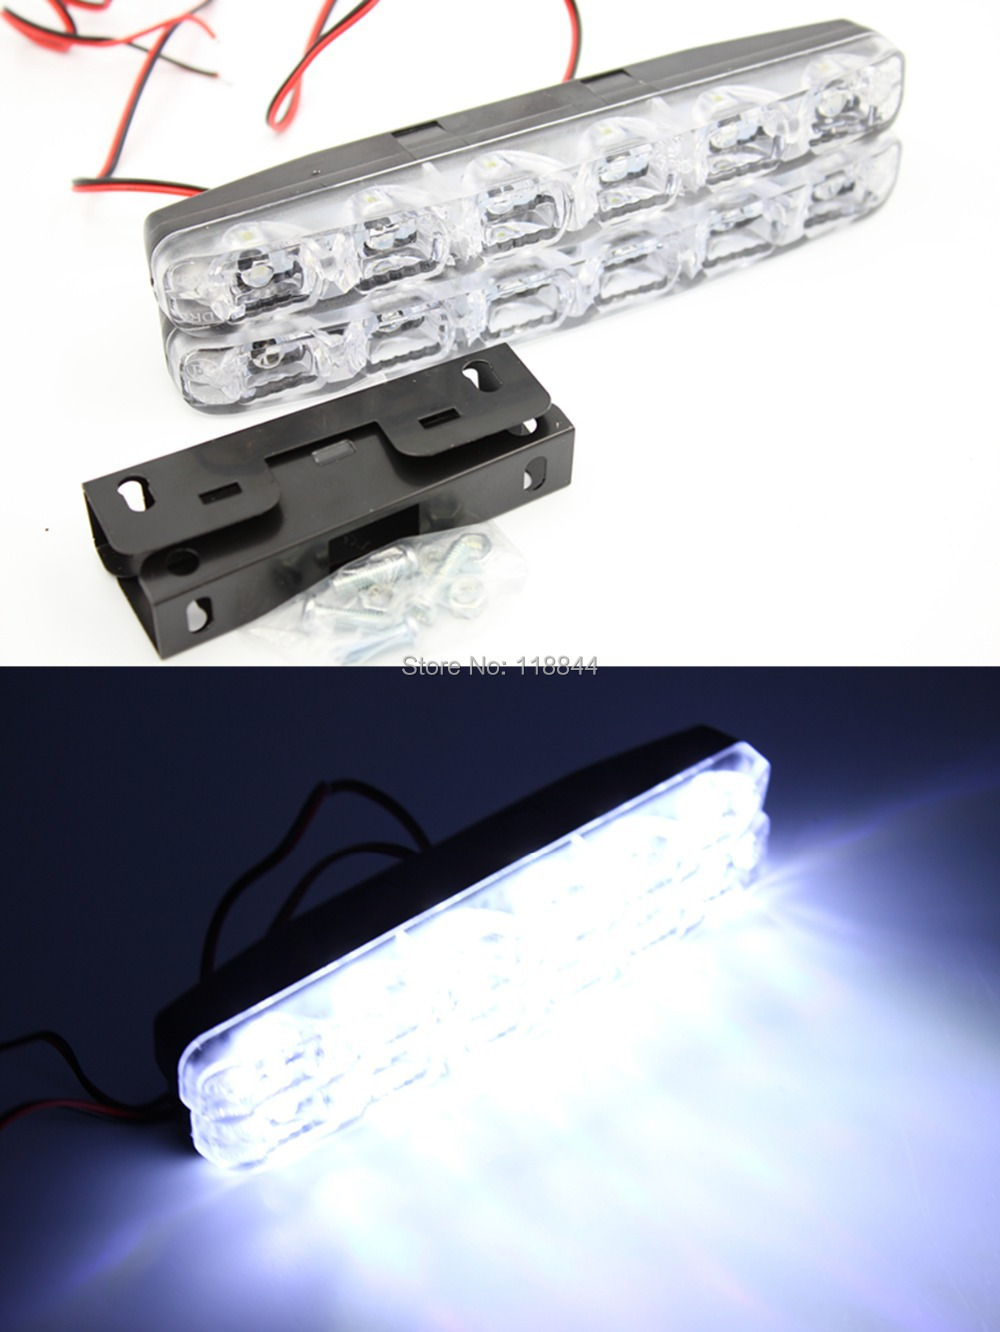 New 2Pcs E4 100% WATERPROOF 6W Car Daytime Running Lights 6 LED DRL Fog lamp bulb Daylight Kit Super White 12V DC 2pcs universal car daytime running lights 8 led drl daylight kit super white 12v dc head lamp free shipping